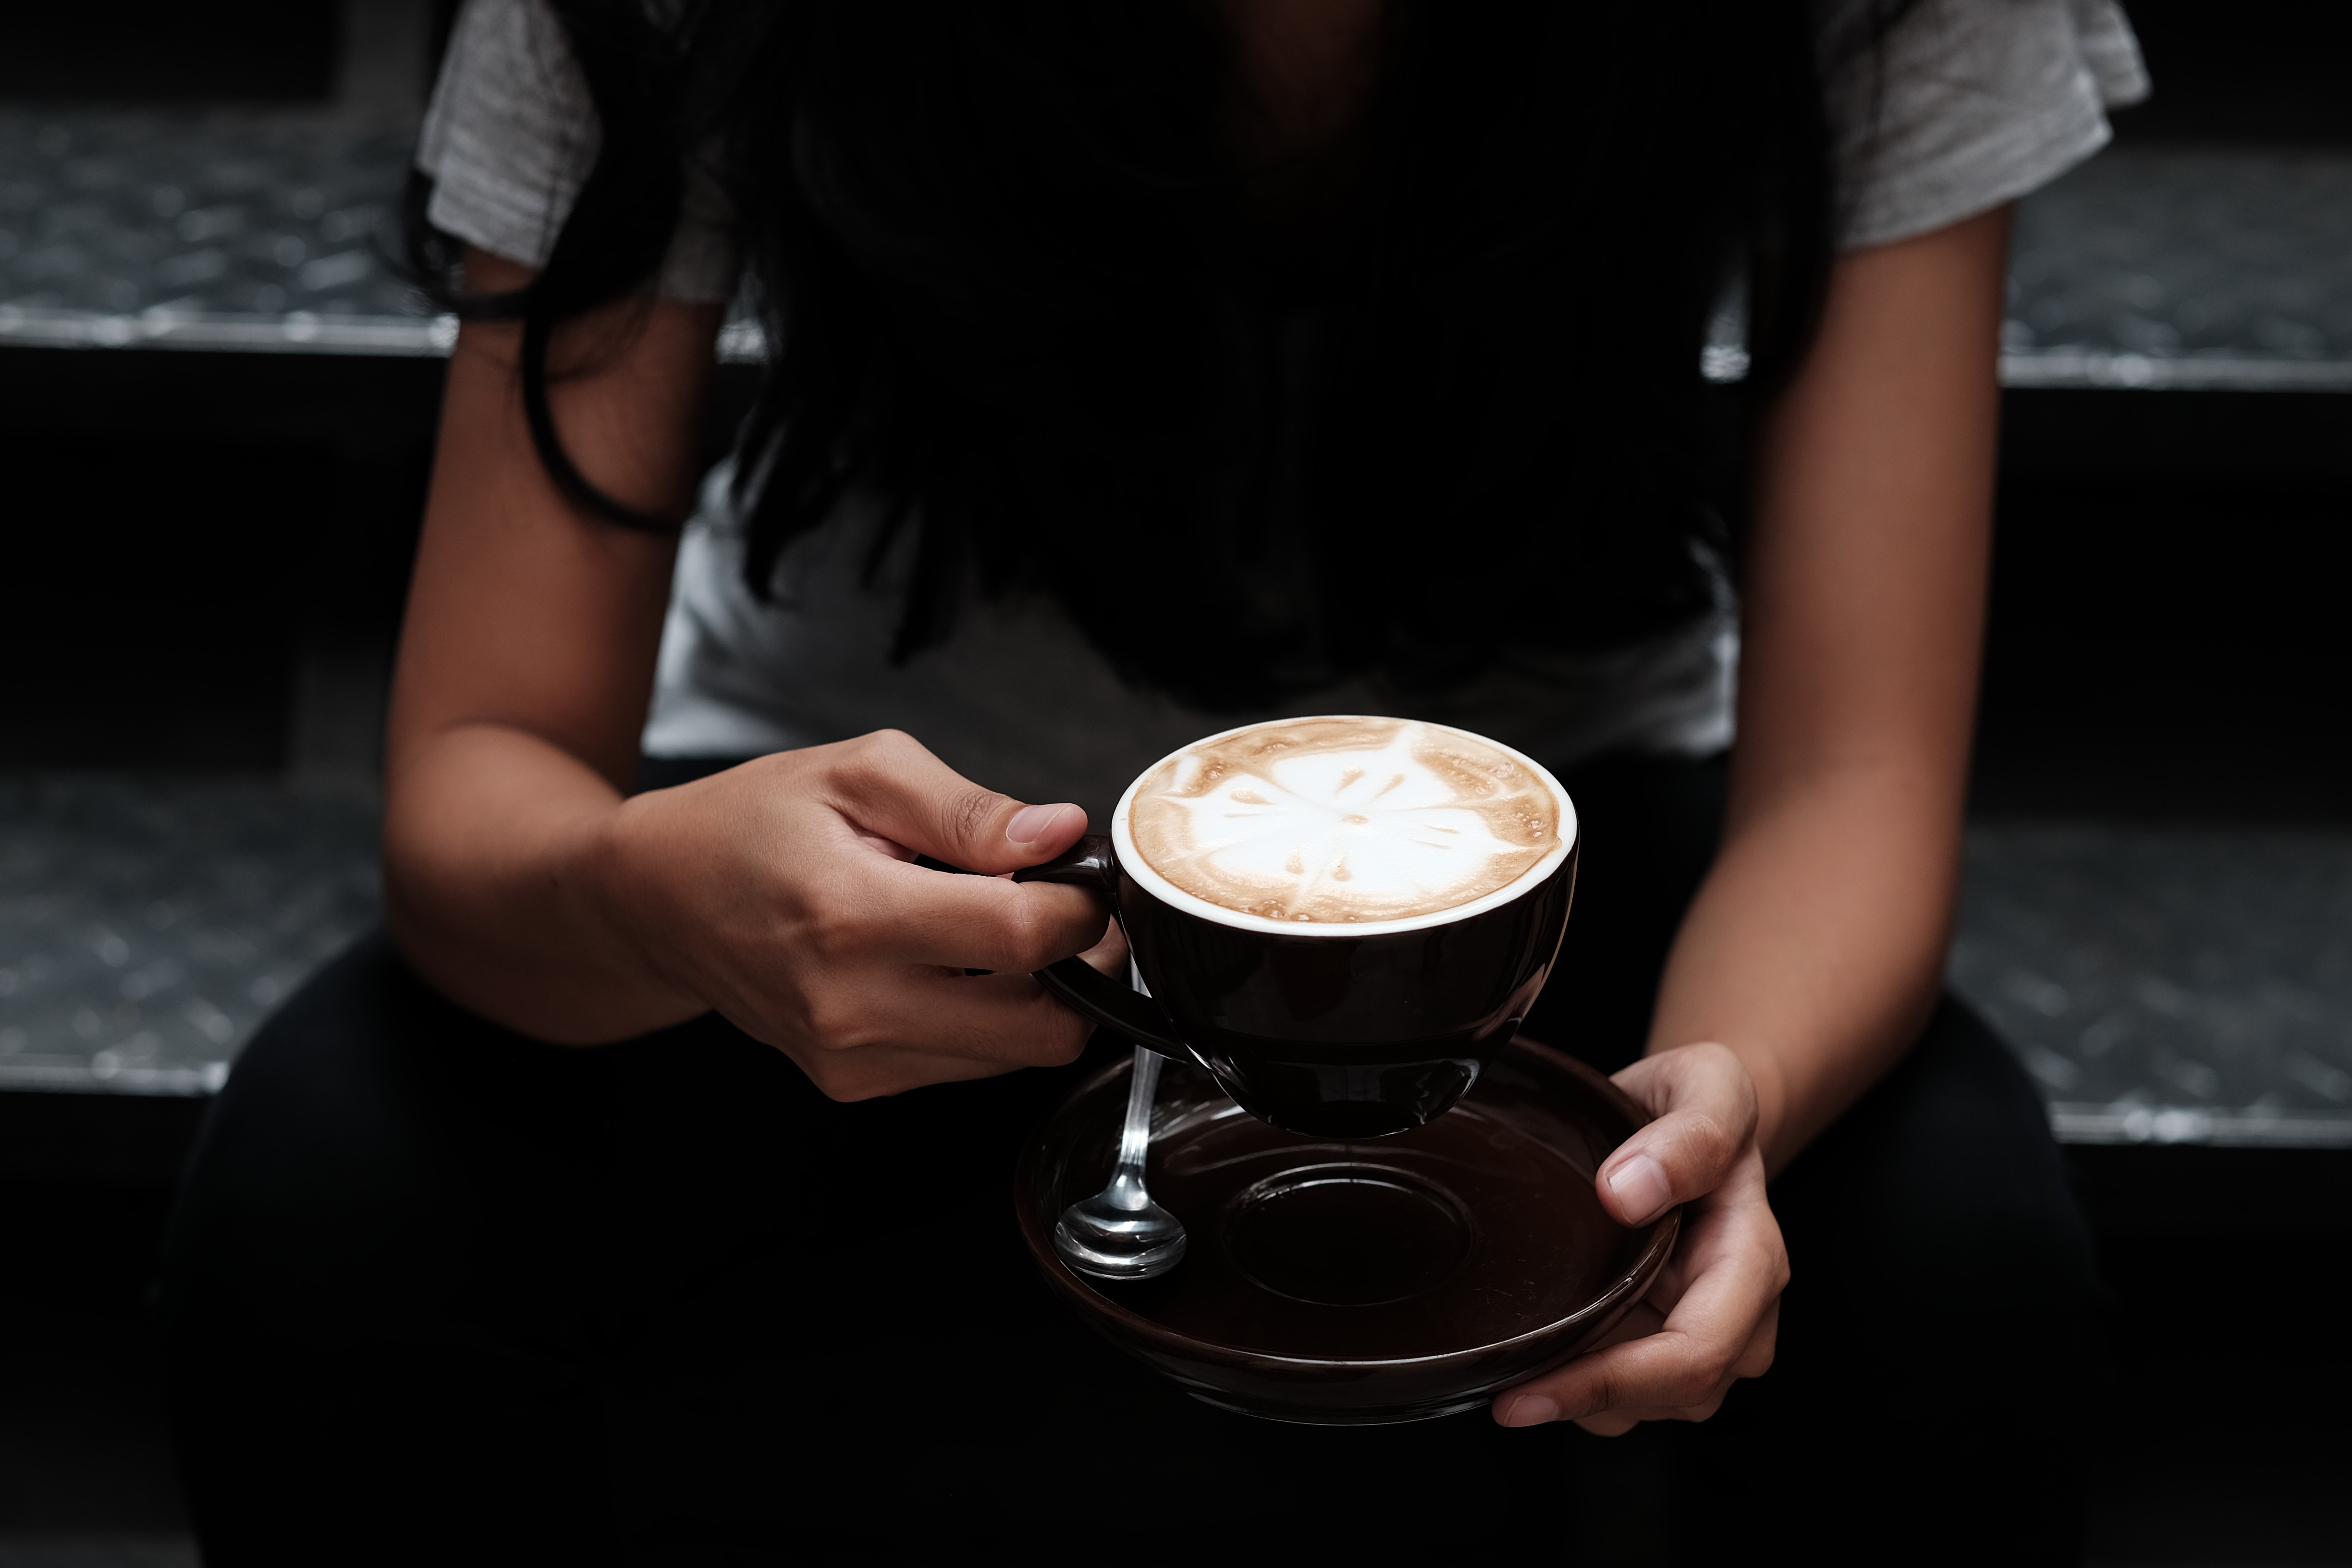 129475 download wallpaper Food, Cup, Coffee, Hands, Cappuccino screensavers and pictures for free